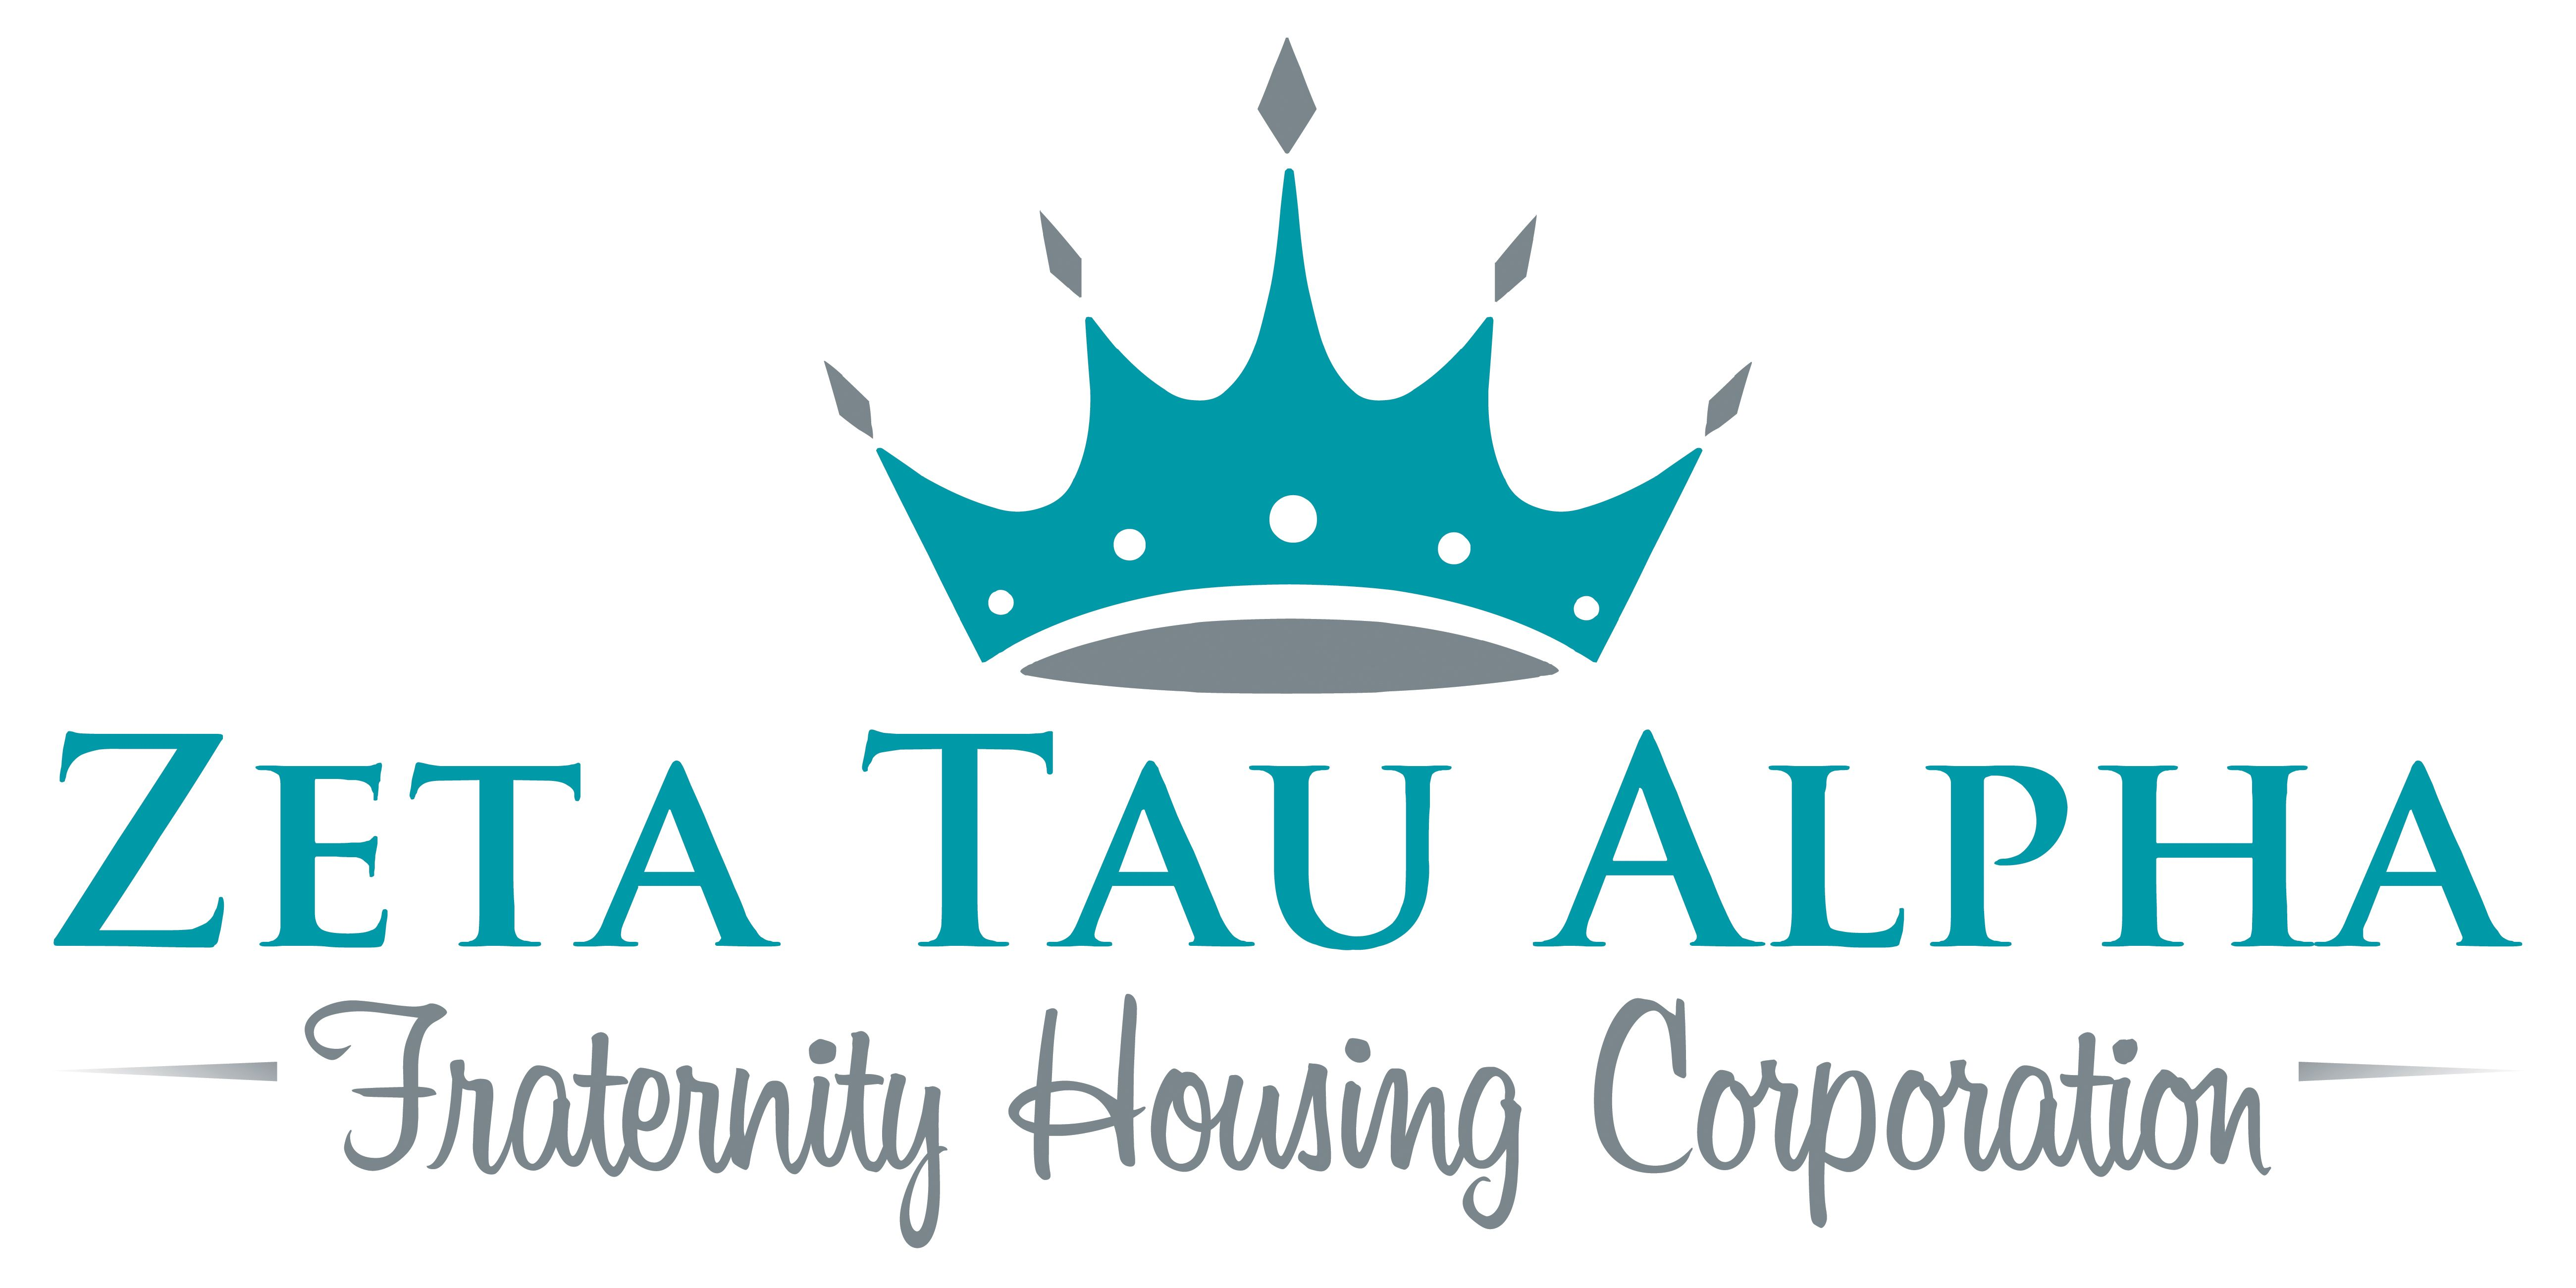 In The Logo For The Fraternity Housing Corporation And Zta